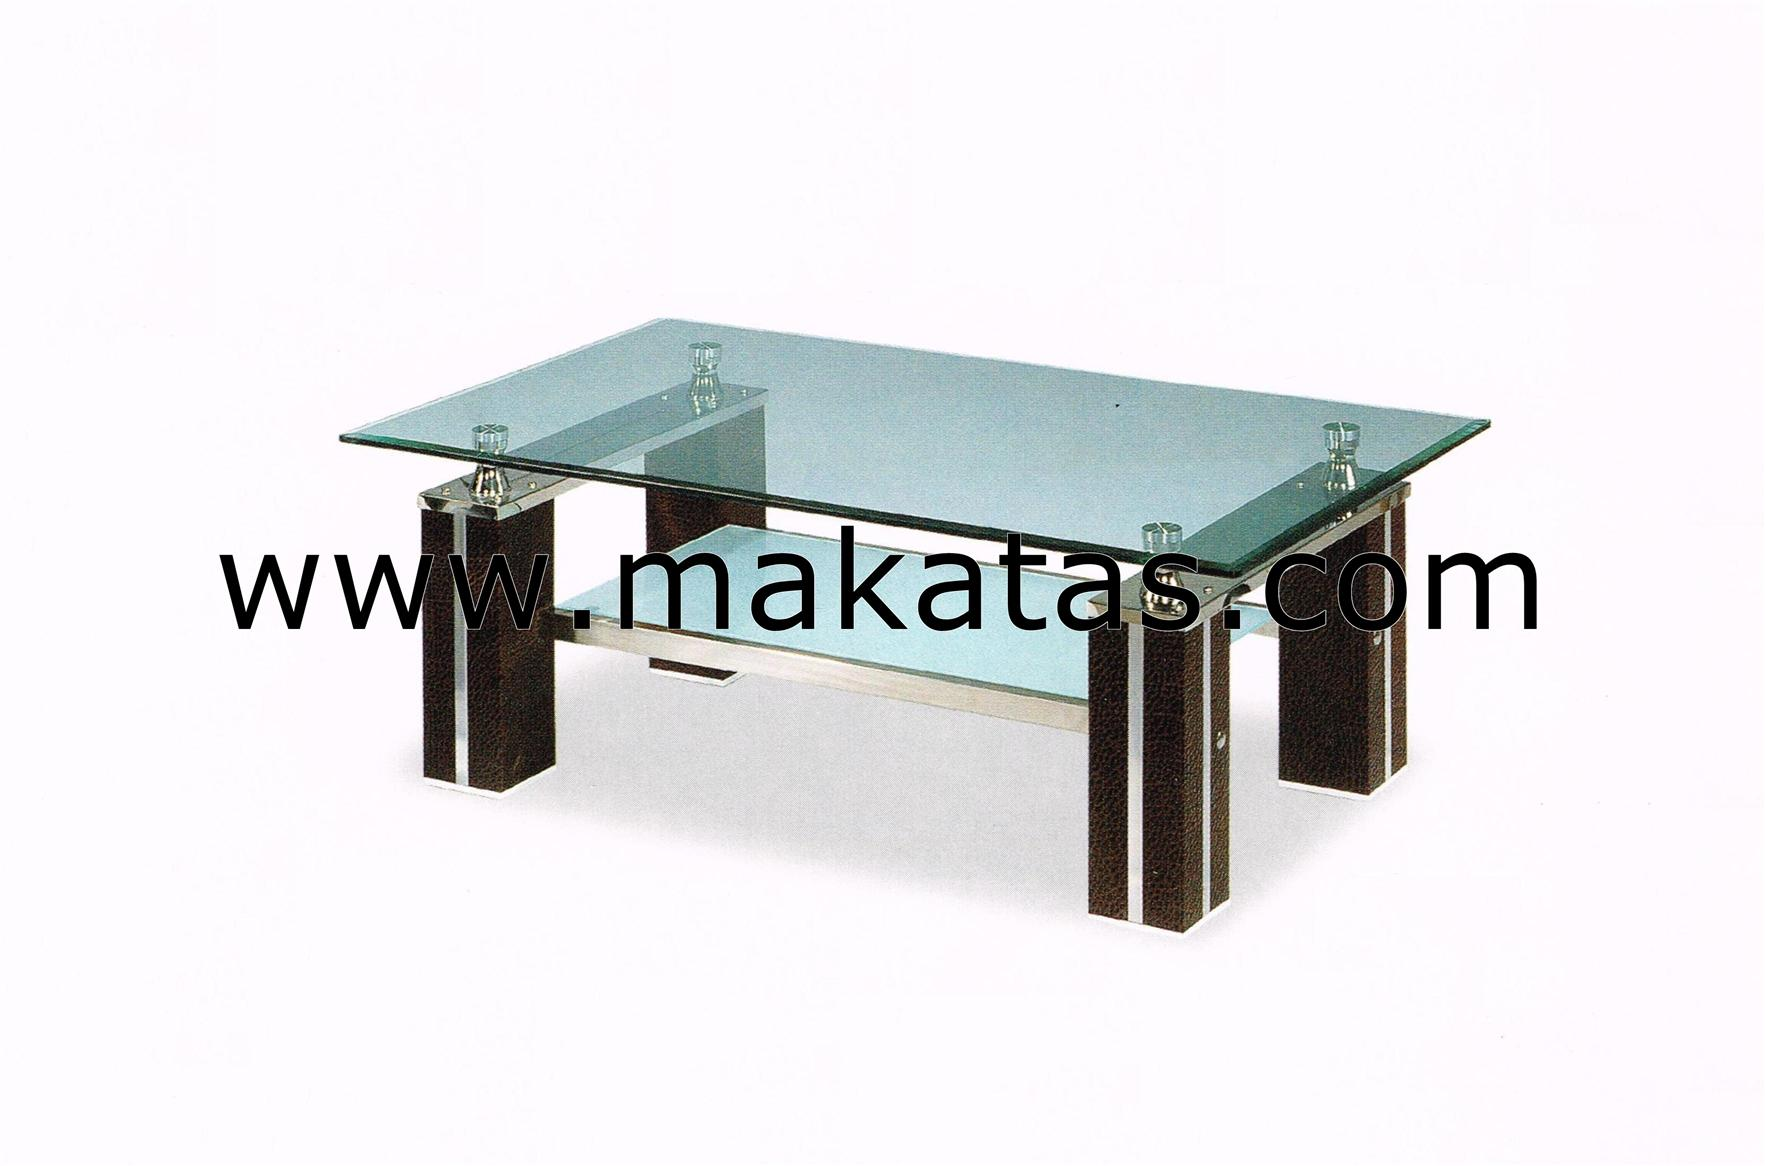 Office Table Office Furniture Main End 3 26 2019 12 00 Pm